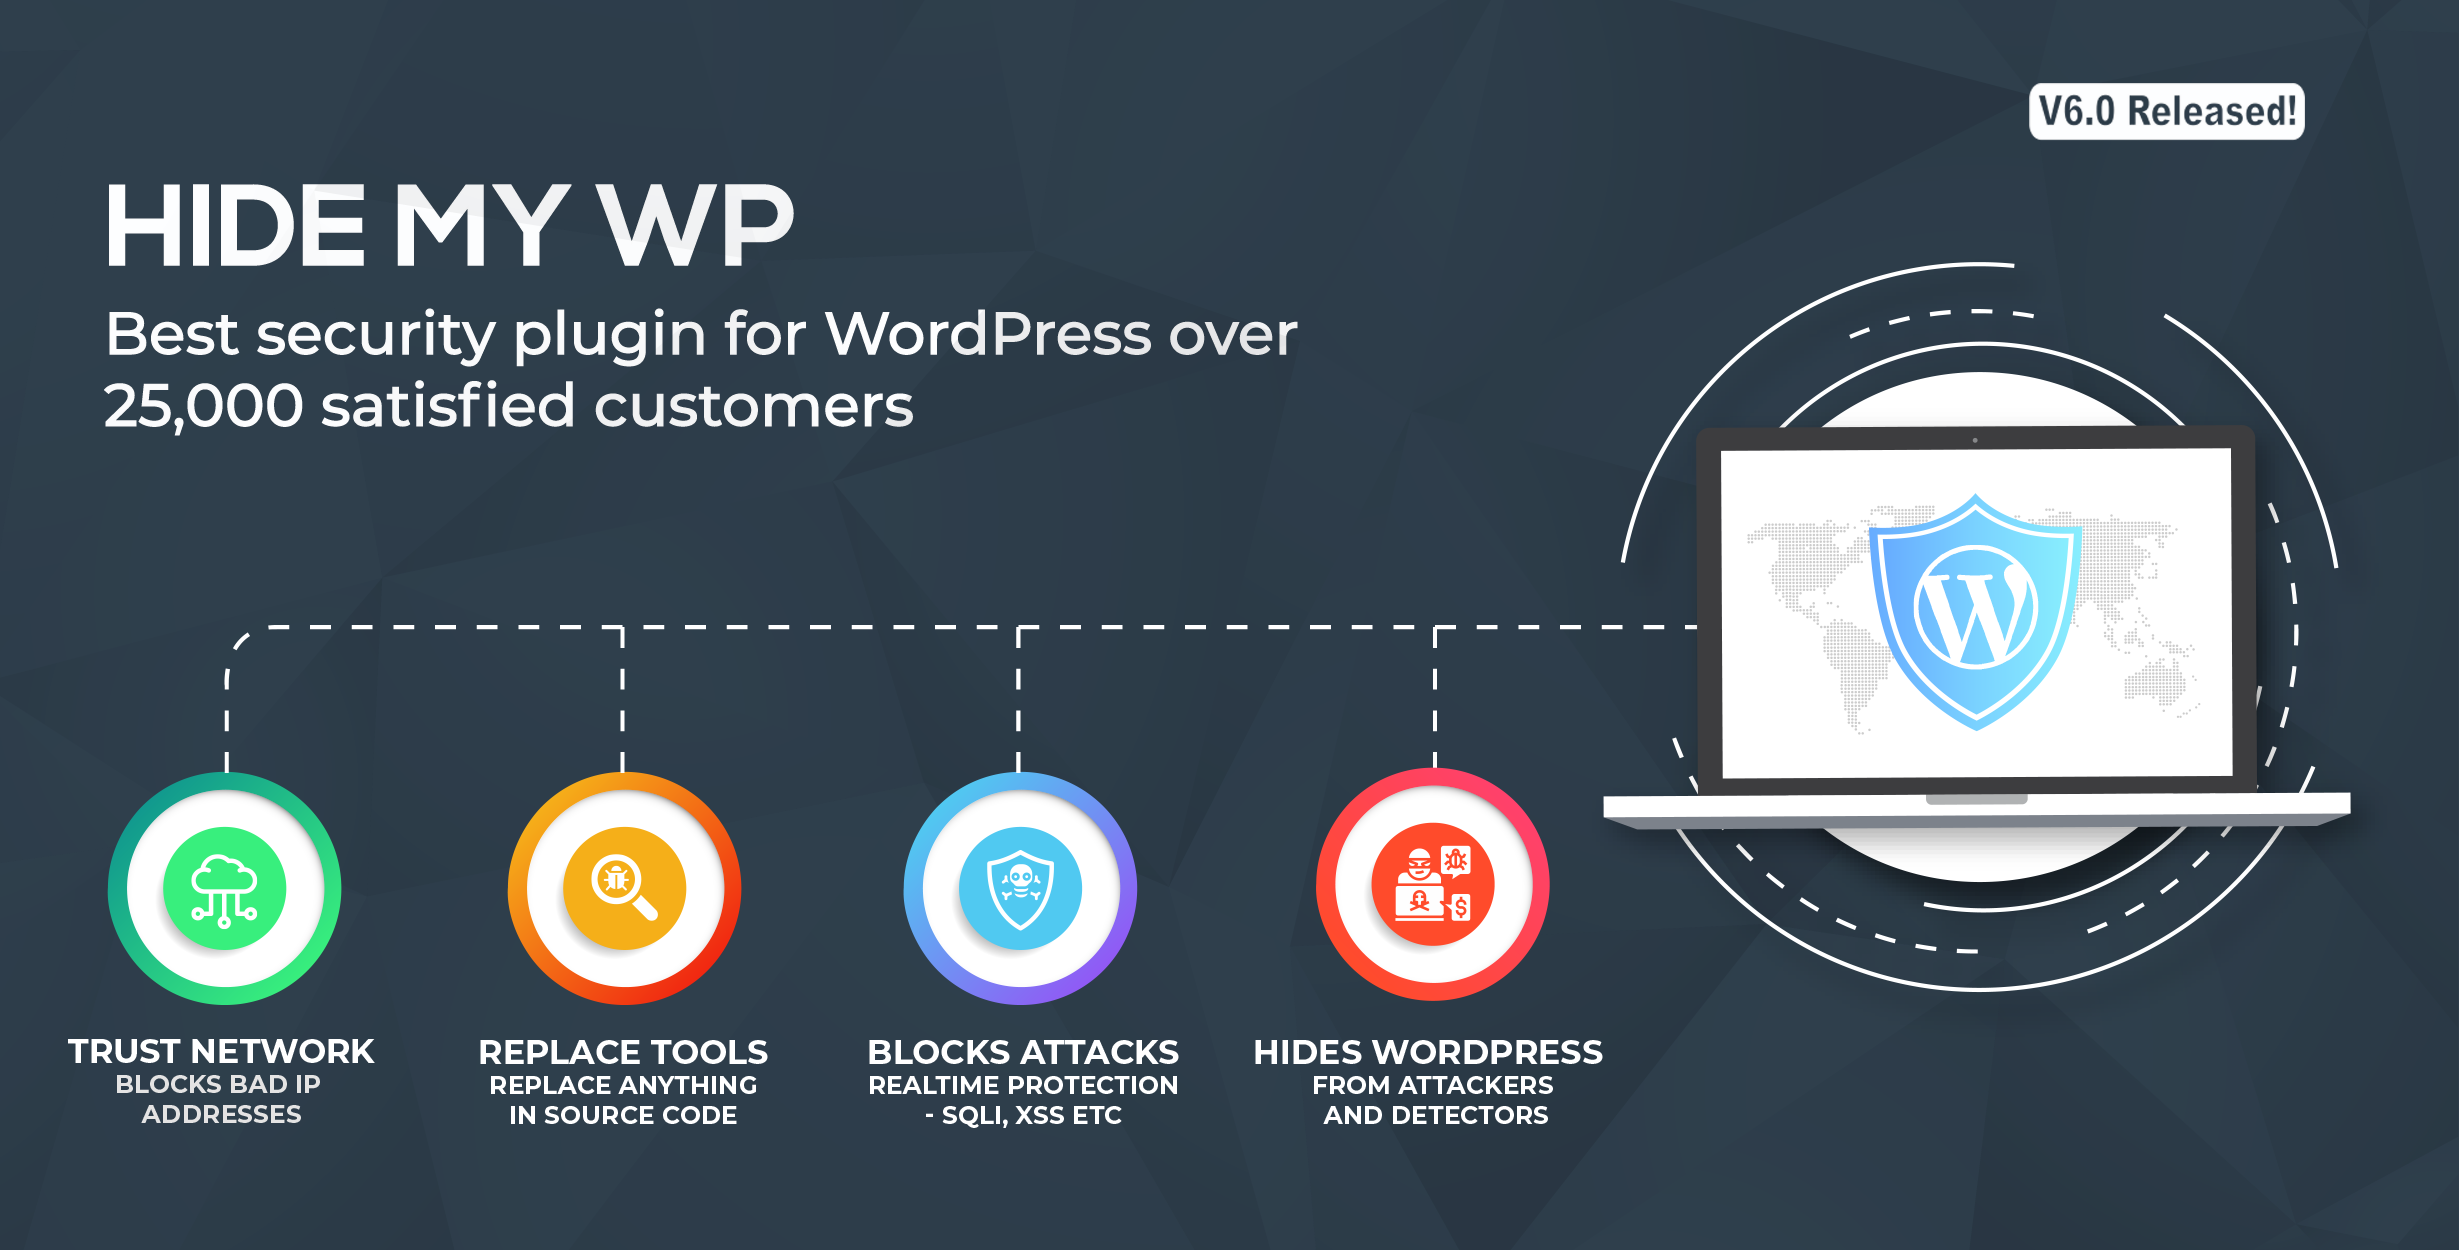 Do WordPress Website Security Plugins Work - Hide My WP Security Plugin